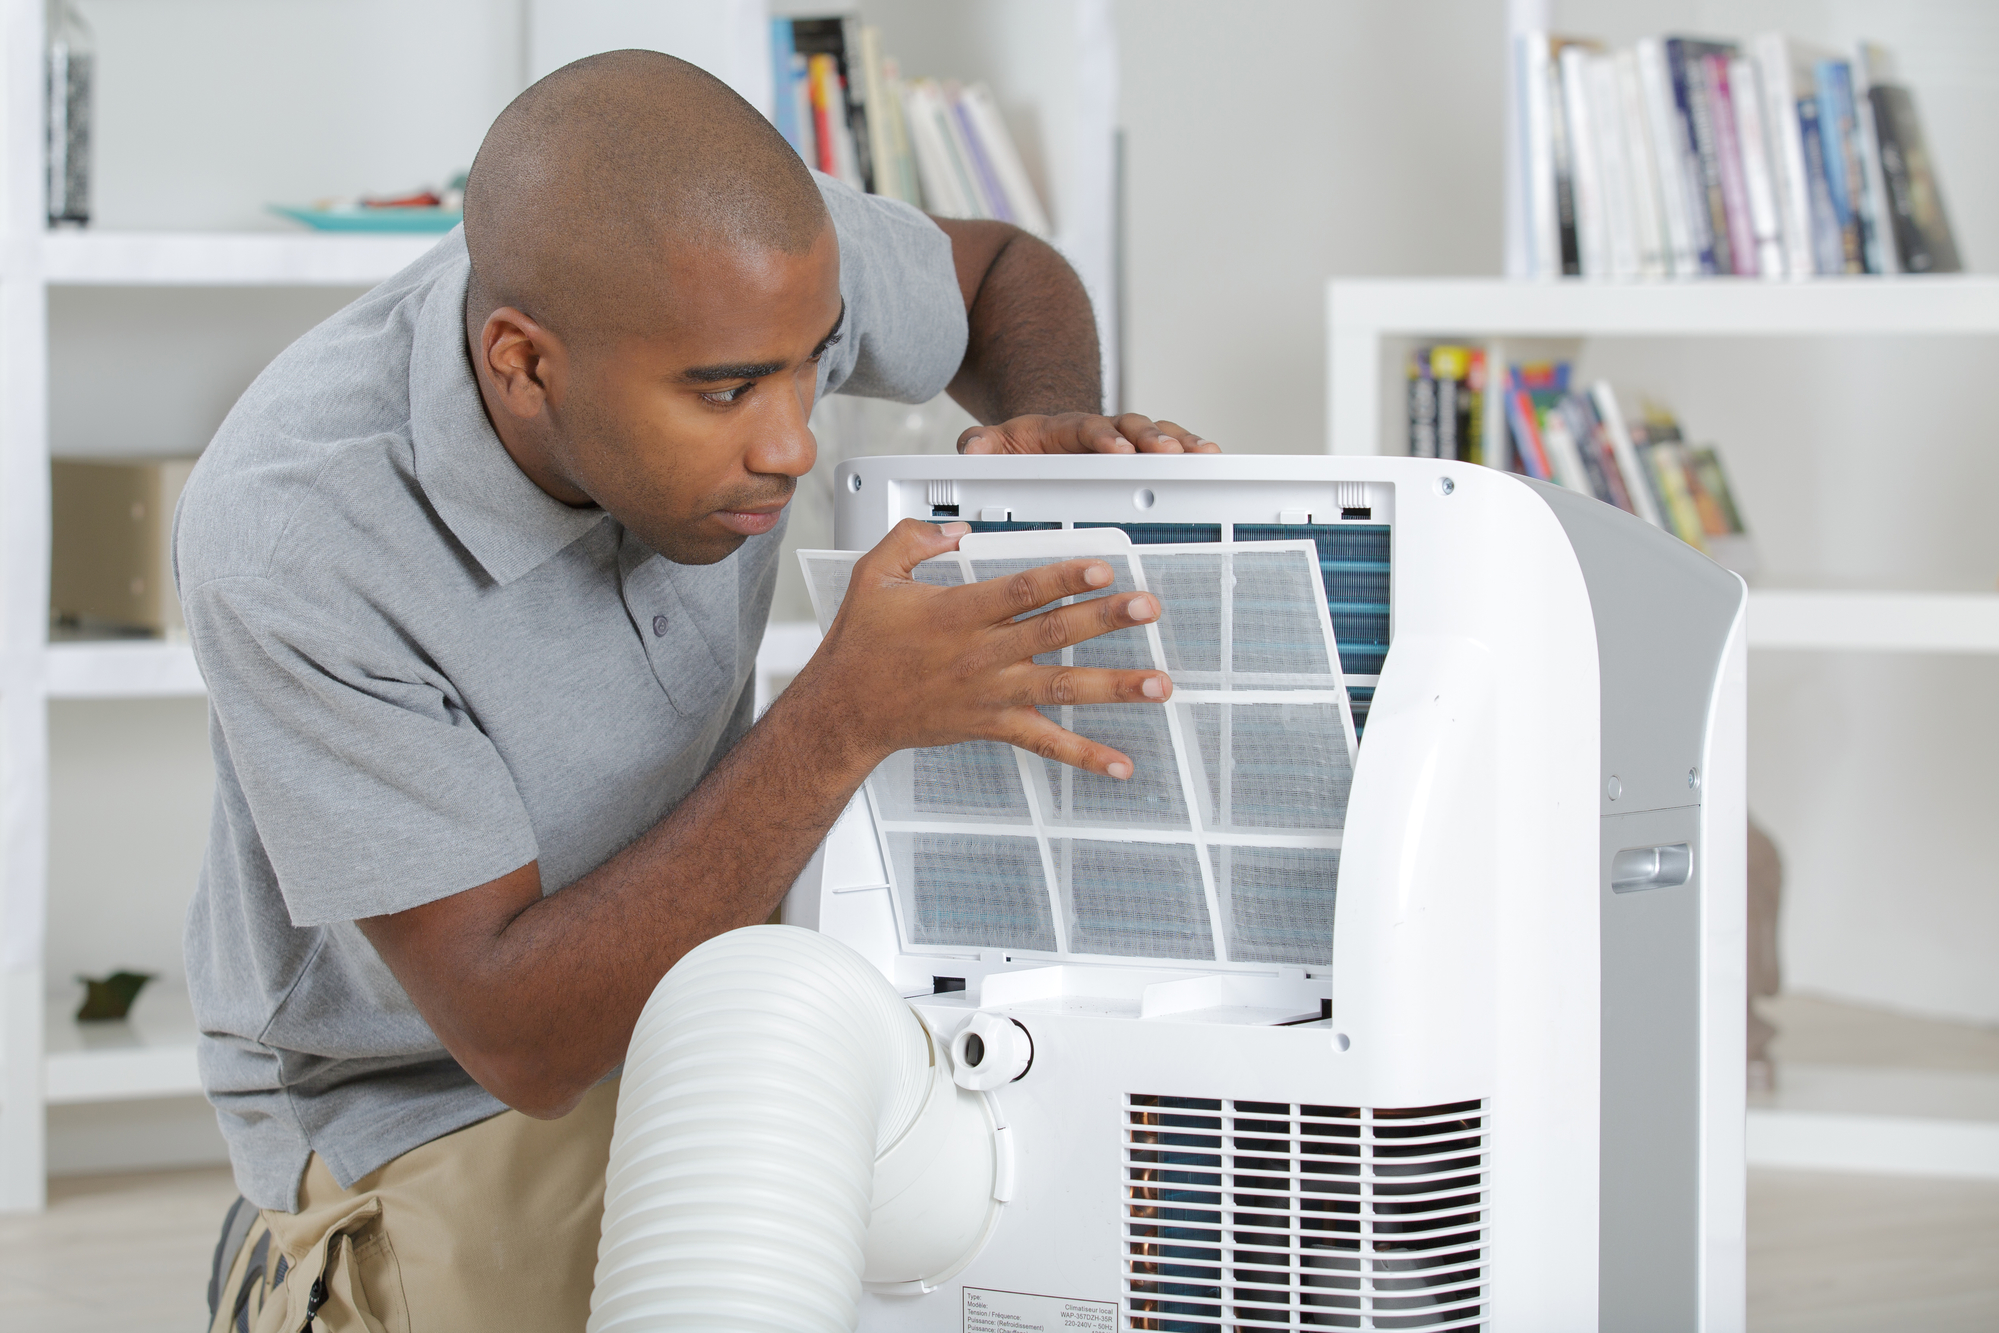 maui air conditioning service professional shares 5 ways to reduce mold growth windward air. Black Bedroom Furniture Sets. Home Design Ideas